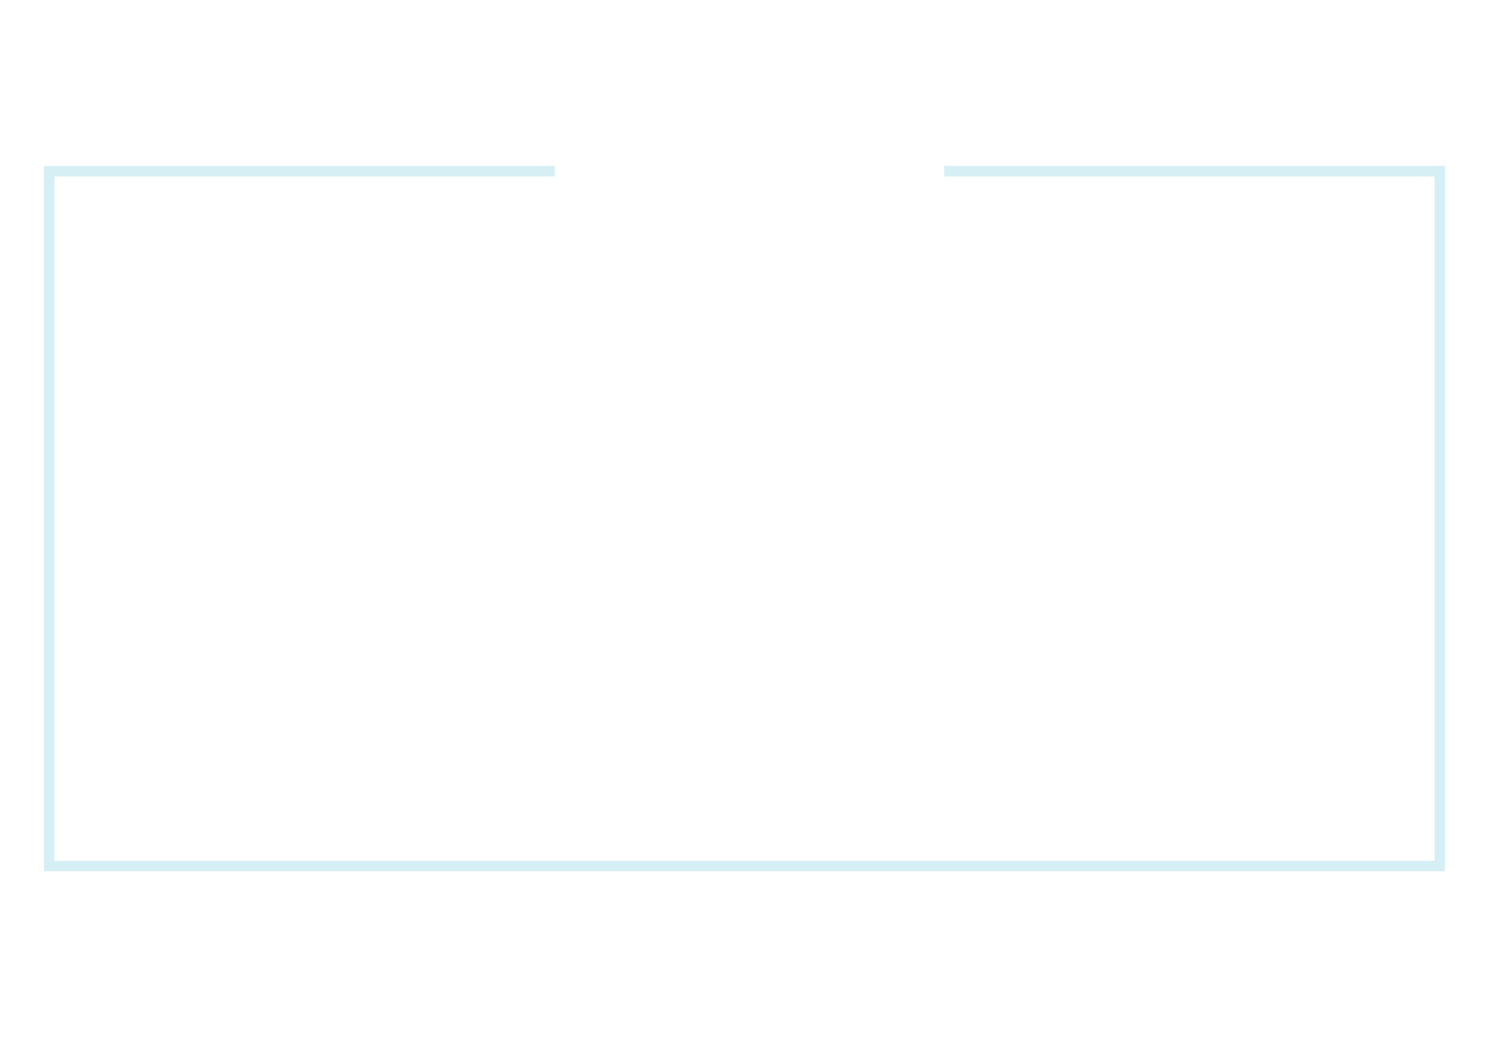 The Business Movement